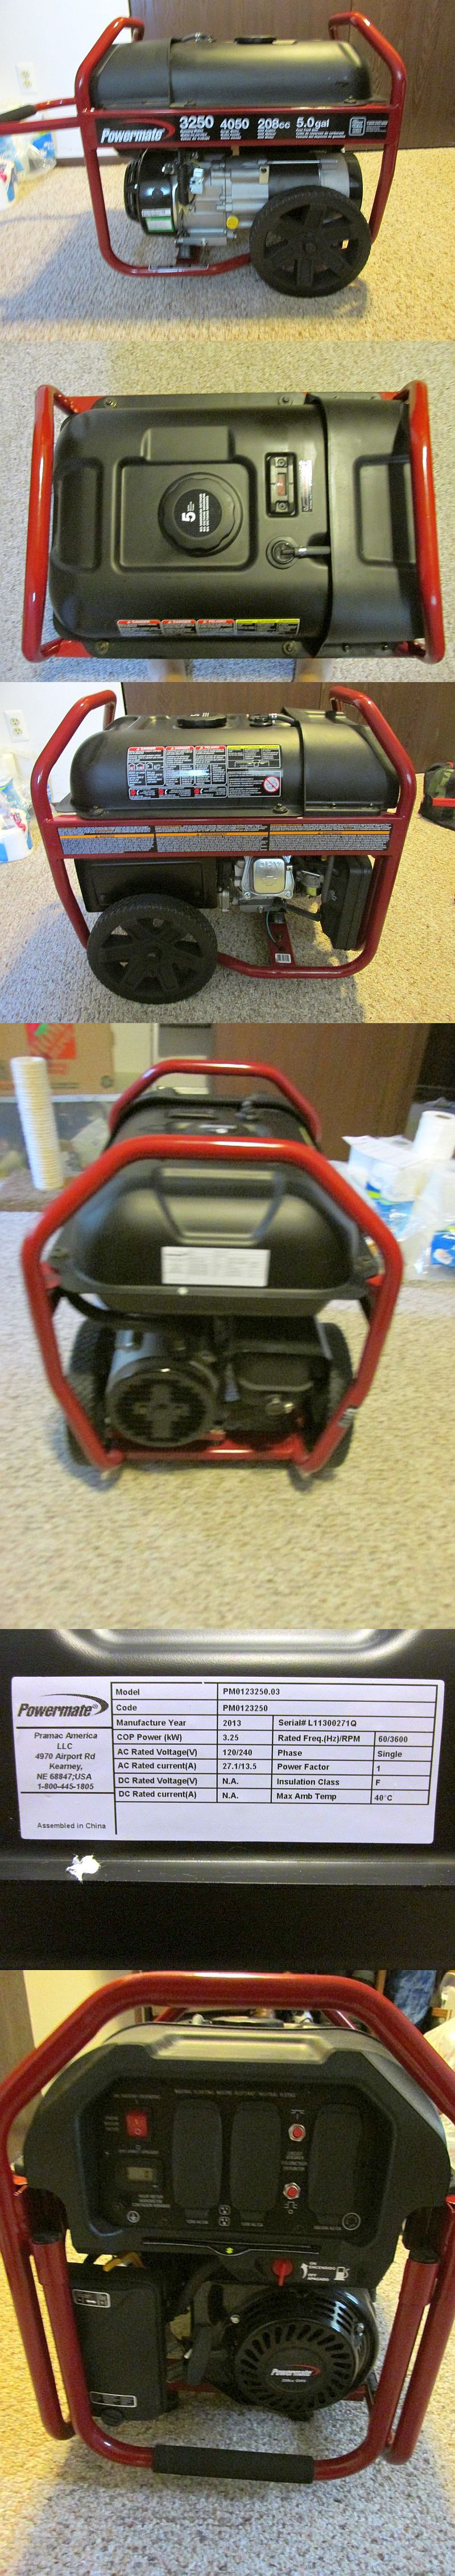 Powermate 3250 Portable Generator used only once clock shows 07